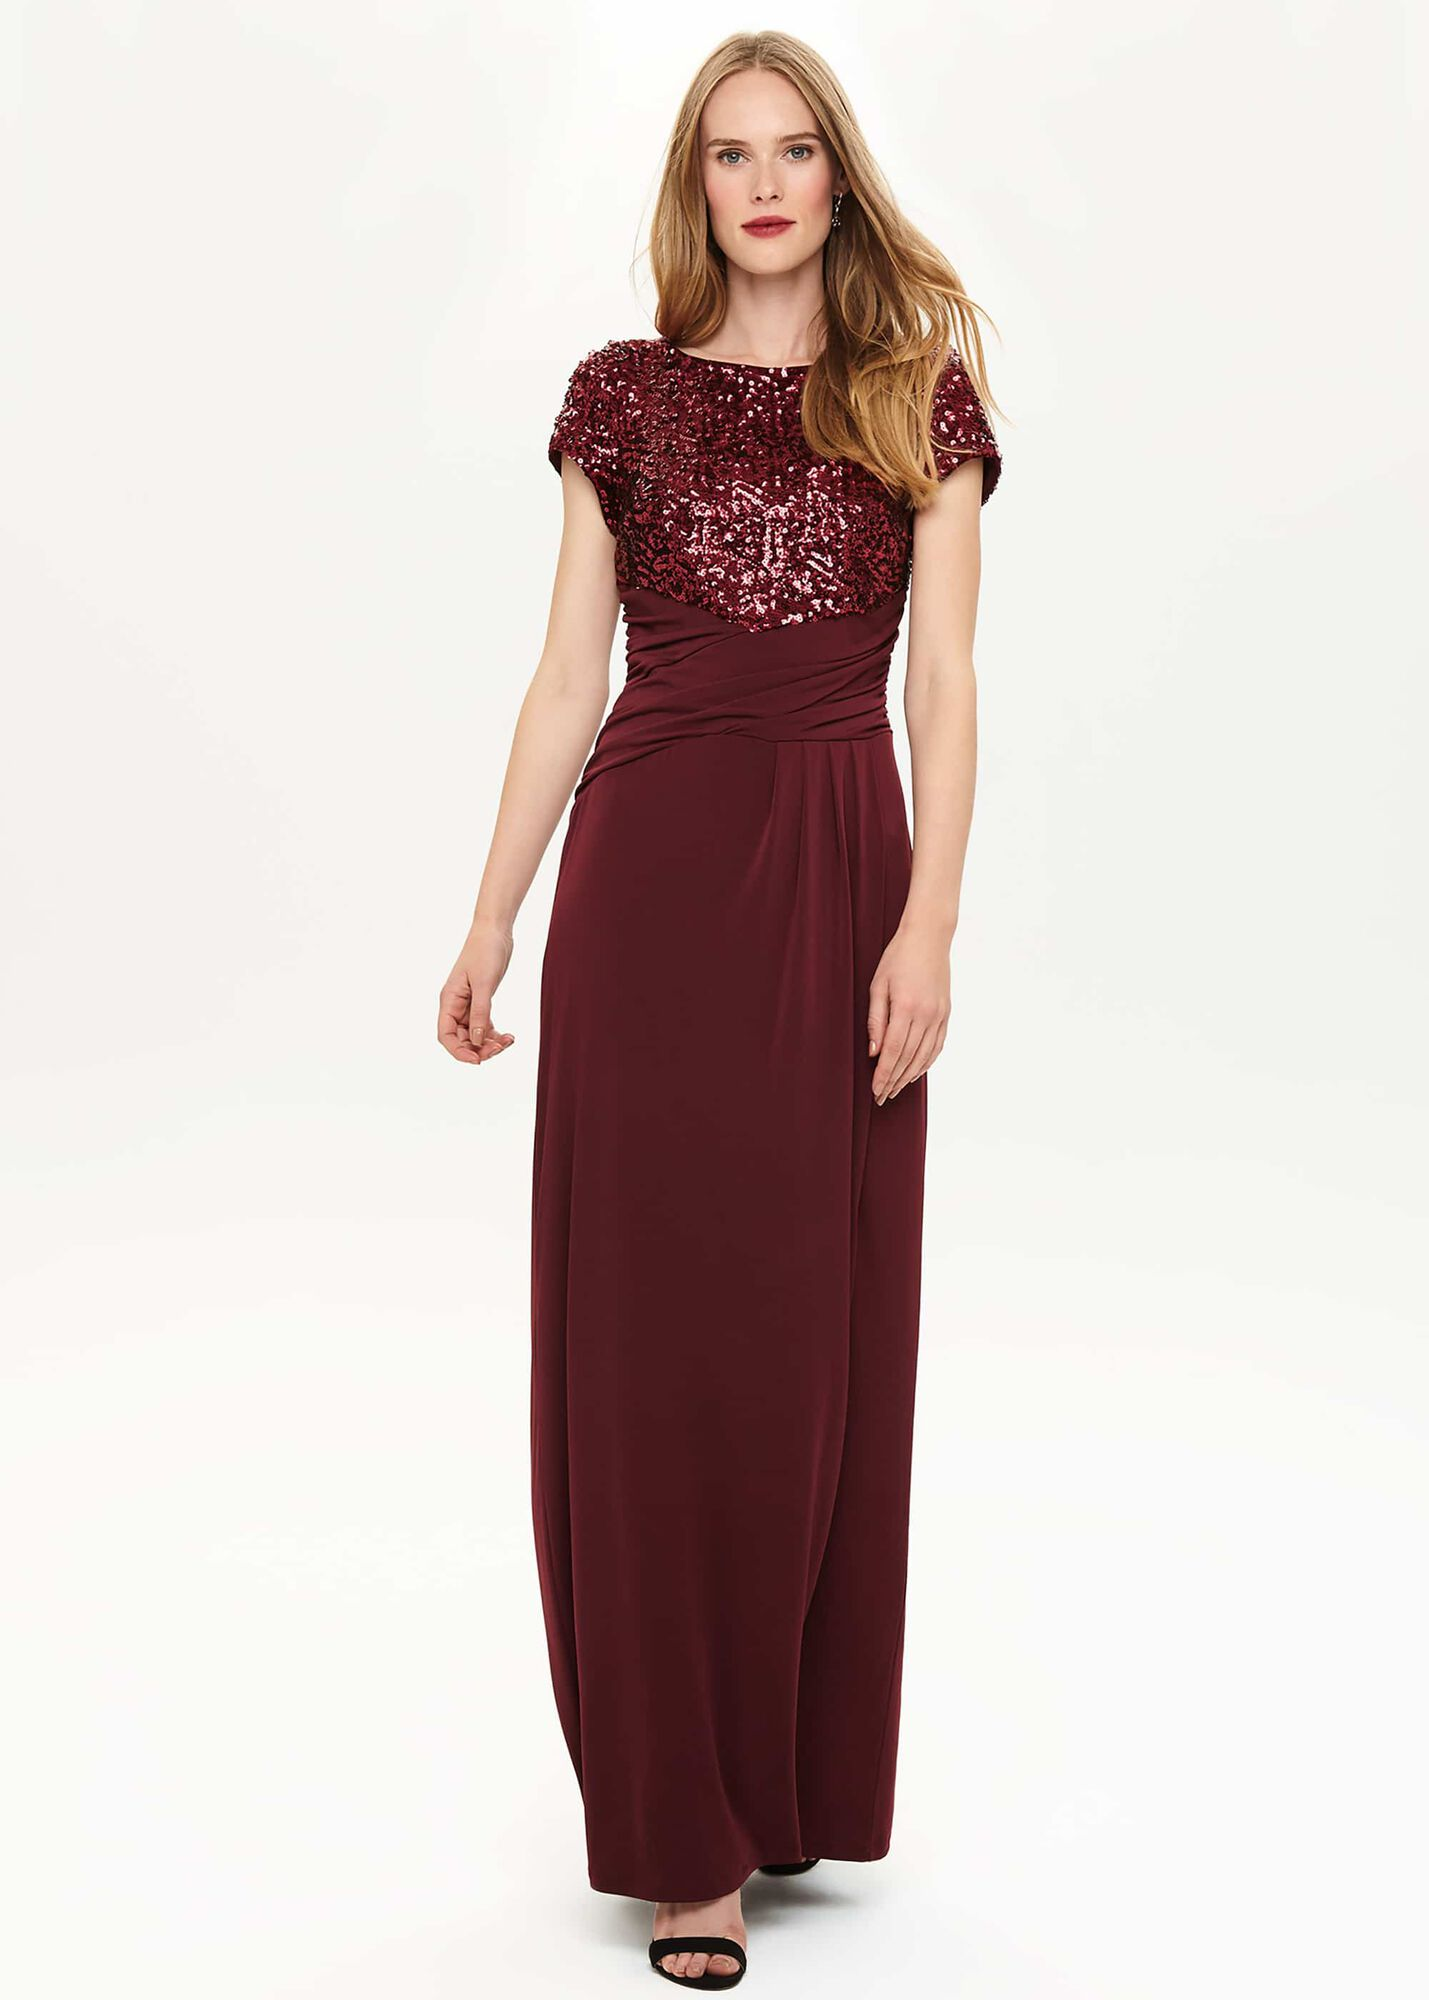 d25b38d7f8 Sinitta Maxi Dress | Phase Eight | Phase Eight